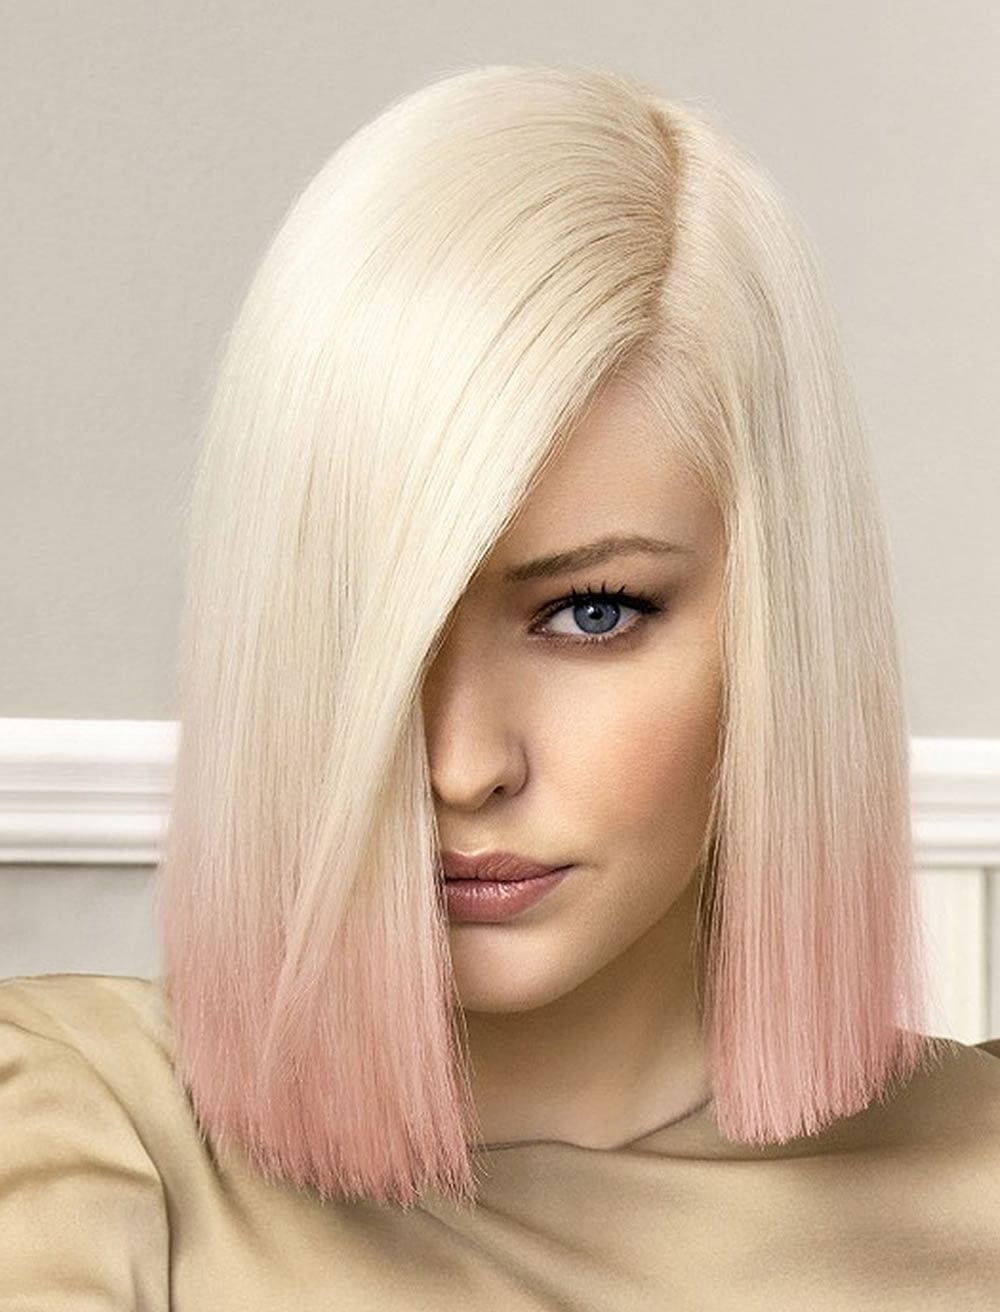 2018 Bob Hairstyles and Haircuts  25 Hottest Bob Cut Images  Page 3  HAIRSTYLES